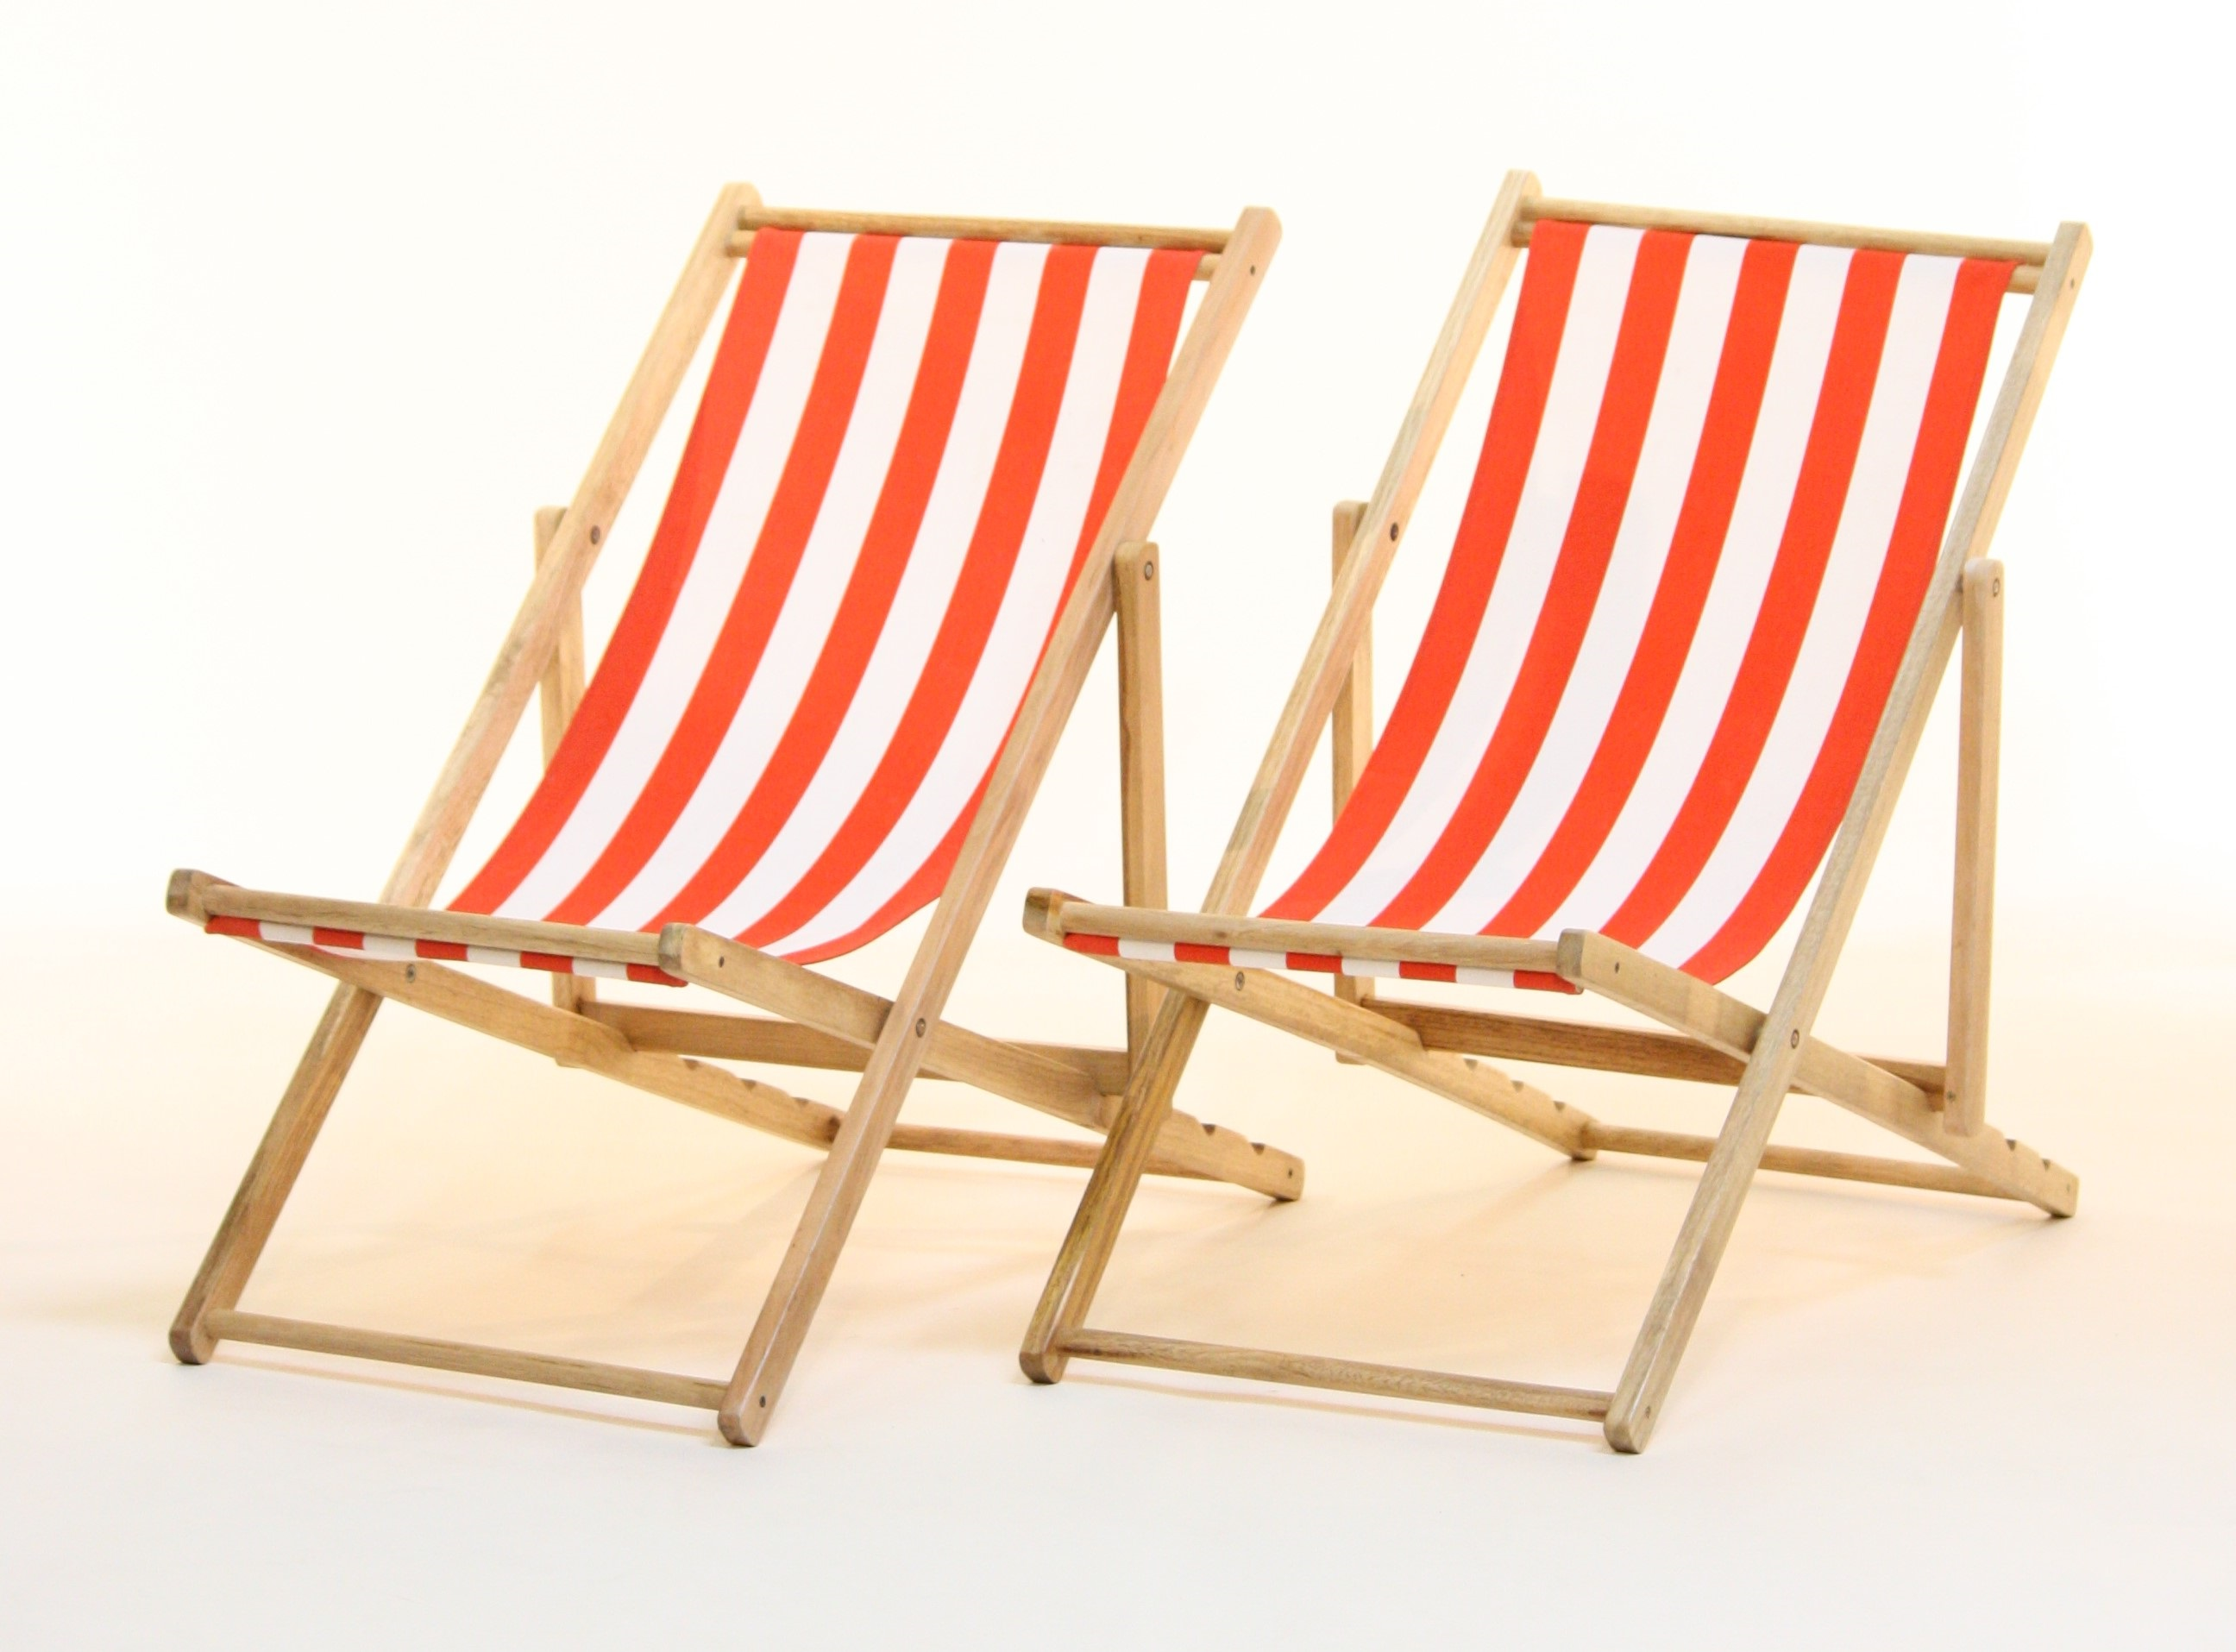 chair southsea trade branded olympic chairs deckchairs deck